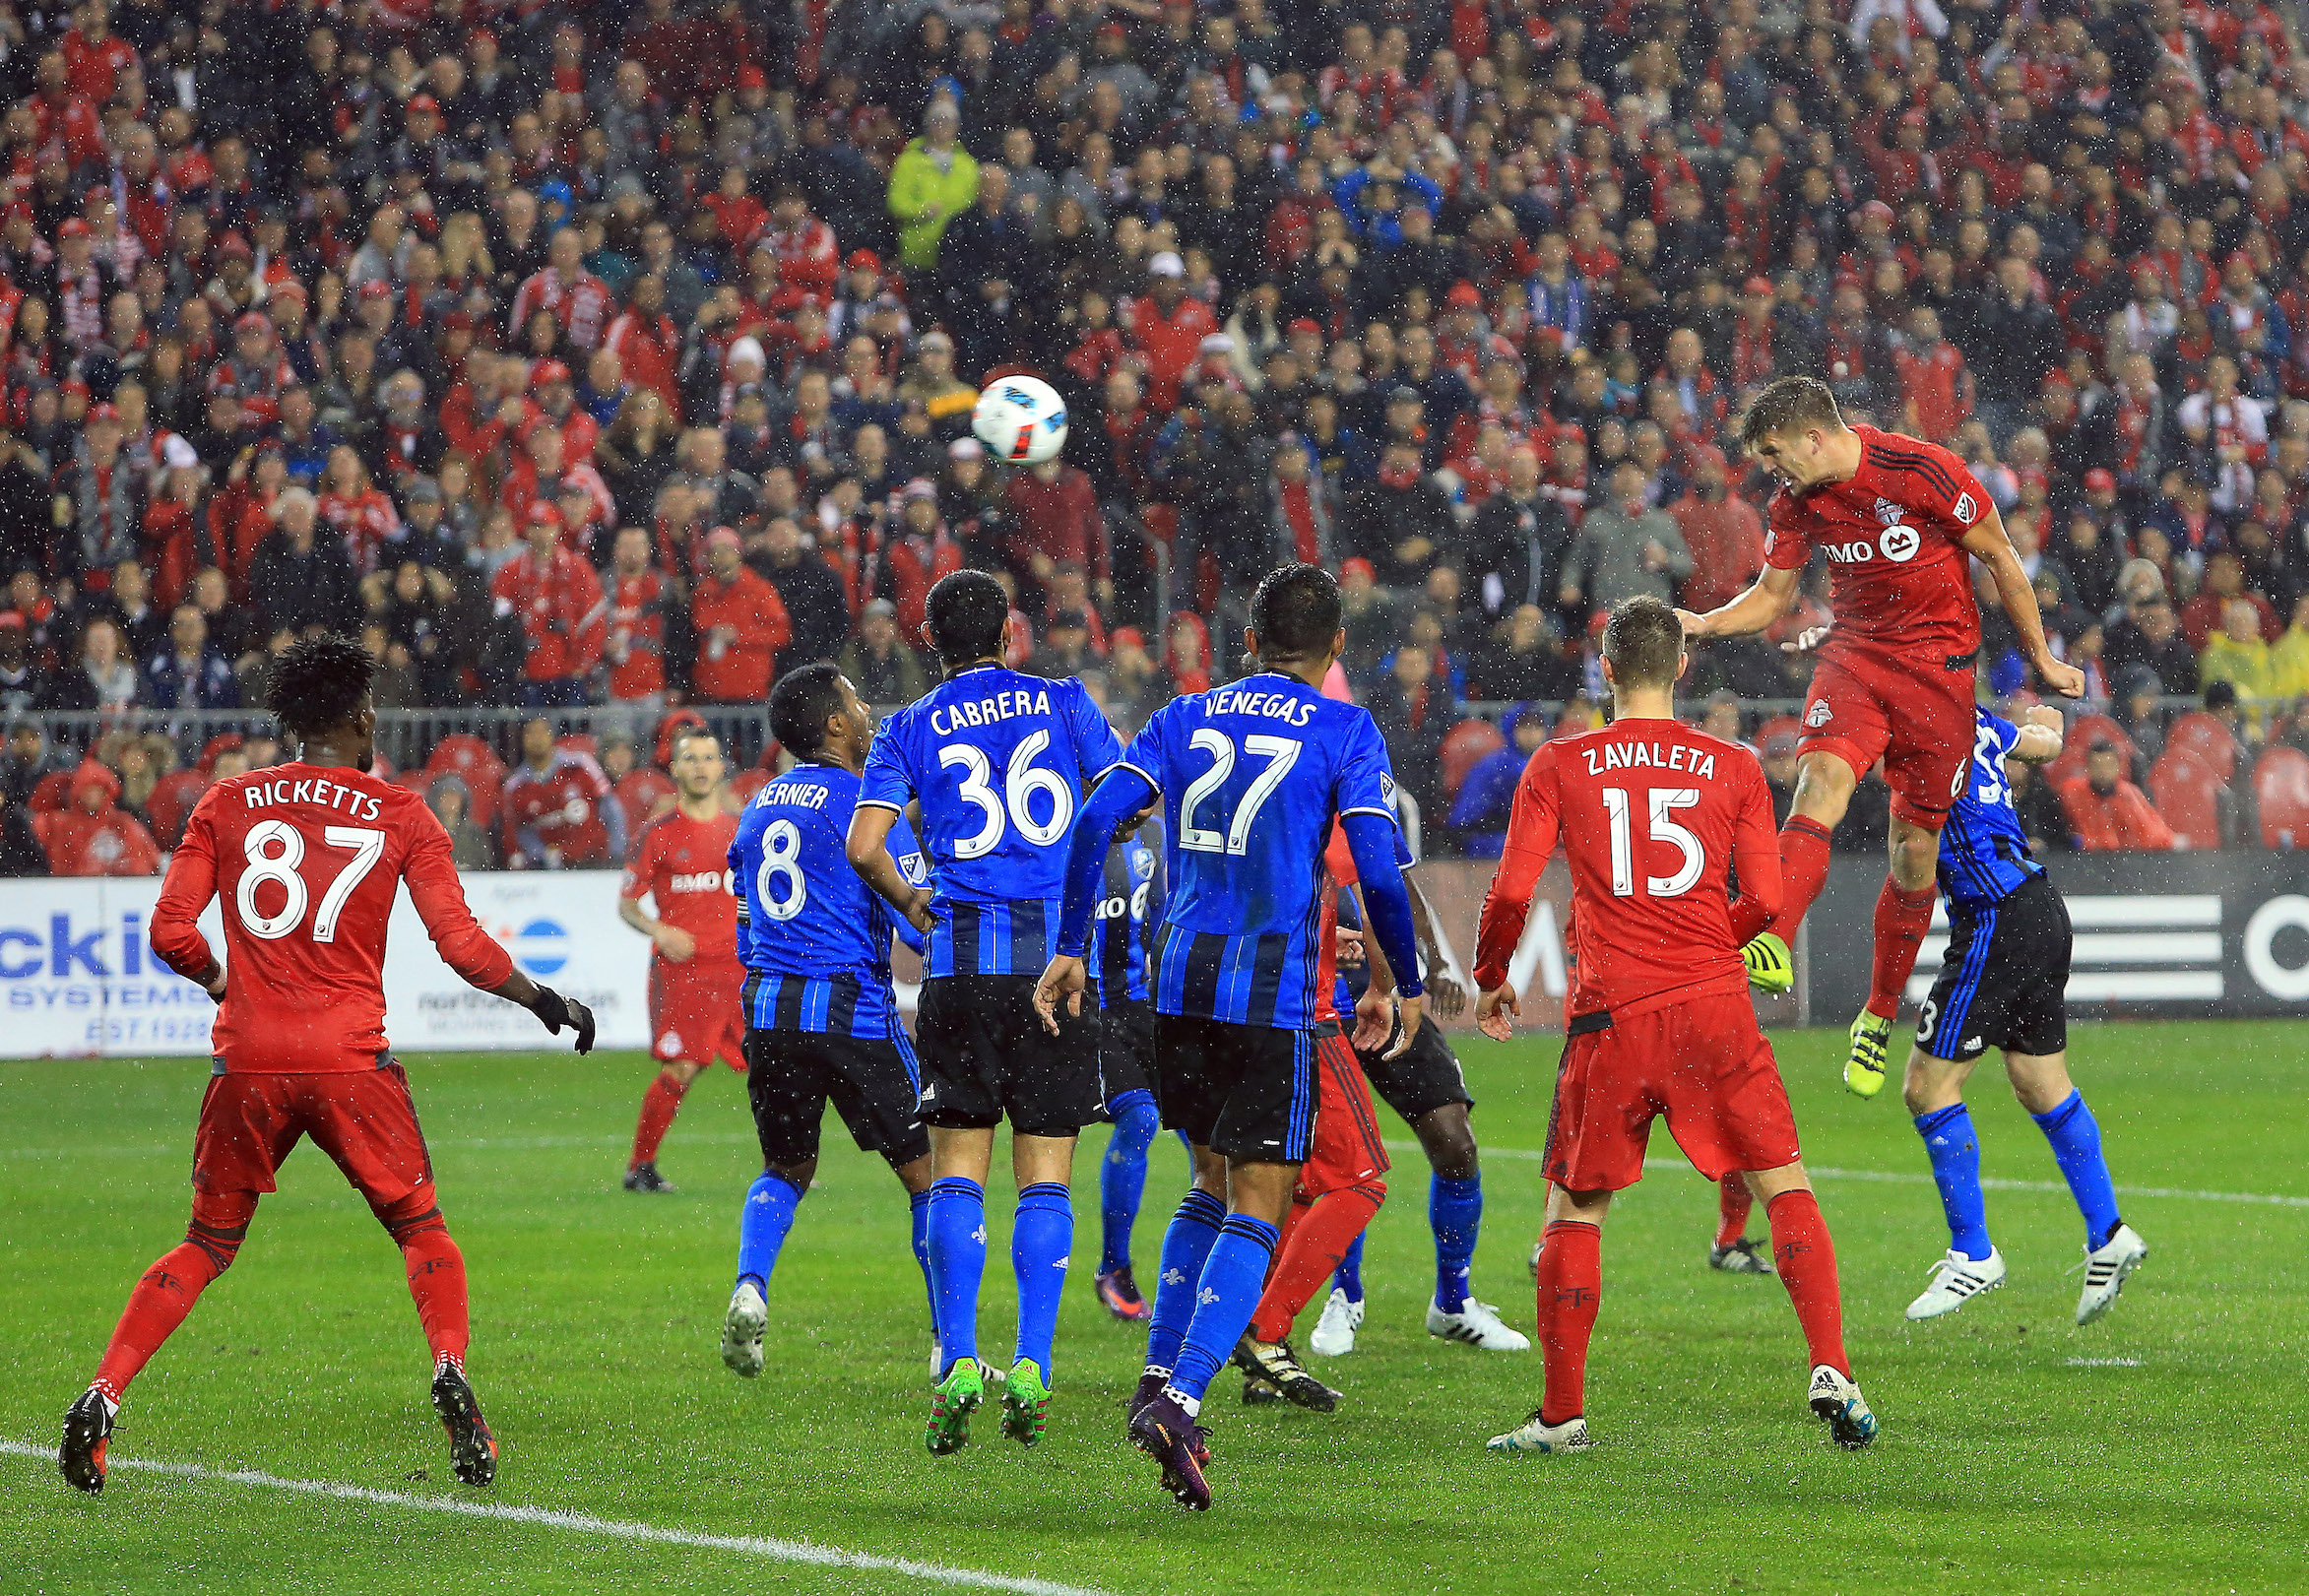 TORONTO, ON - NOVEMBER 30:  Nick Hagglund #6 of Toronto FC scores a goal during the second half of the MLS Eastern Conference Final, Leg 2 game against Montreal Impact at BMO Field on November 30, 2016 in Toronto, Ontario, Canada.  (Photo by Vaughn Ridley/Getty Images)